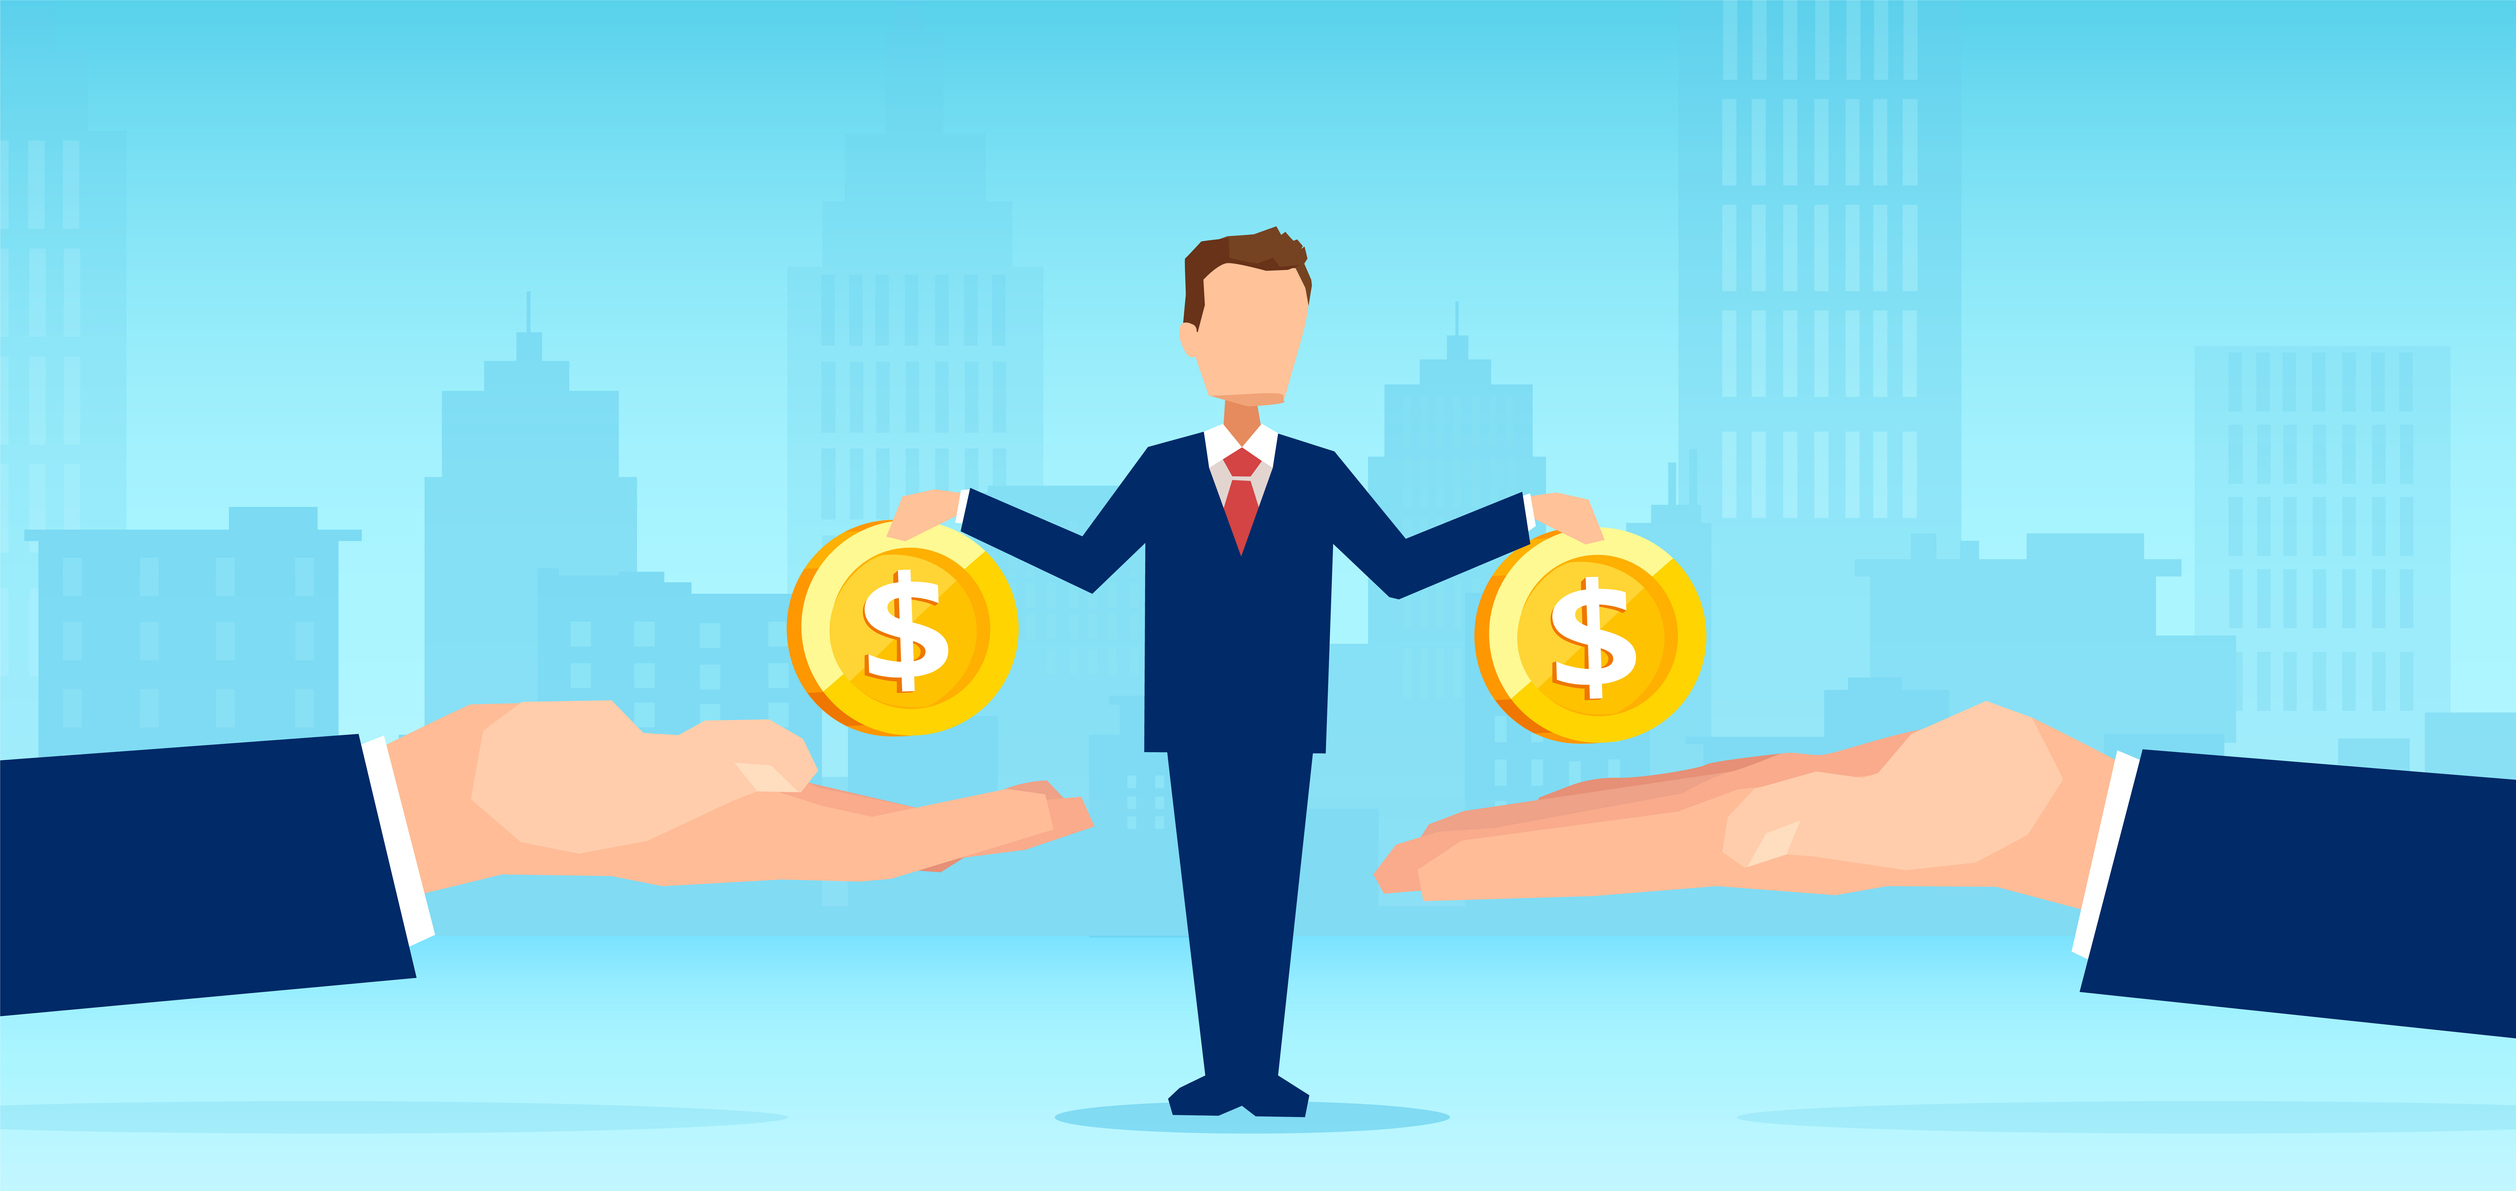 Vector of a small business man owner paying money to big creditors. Image credit: Feodora Chiosea, iStock